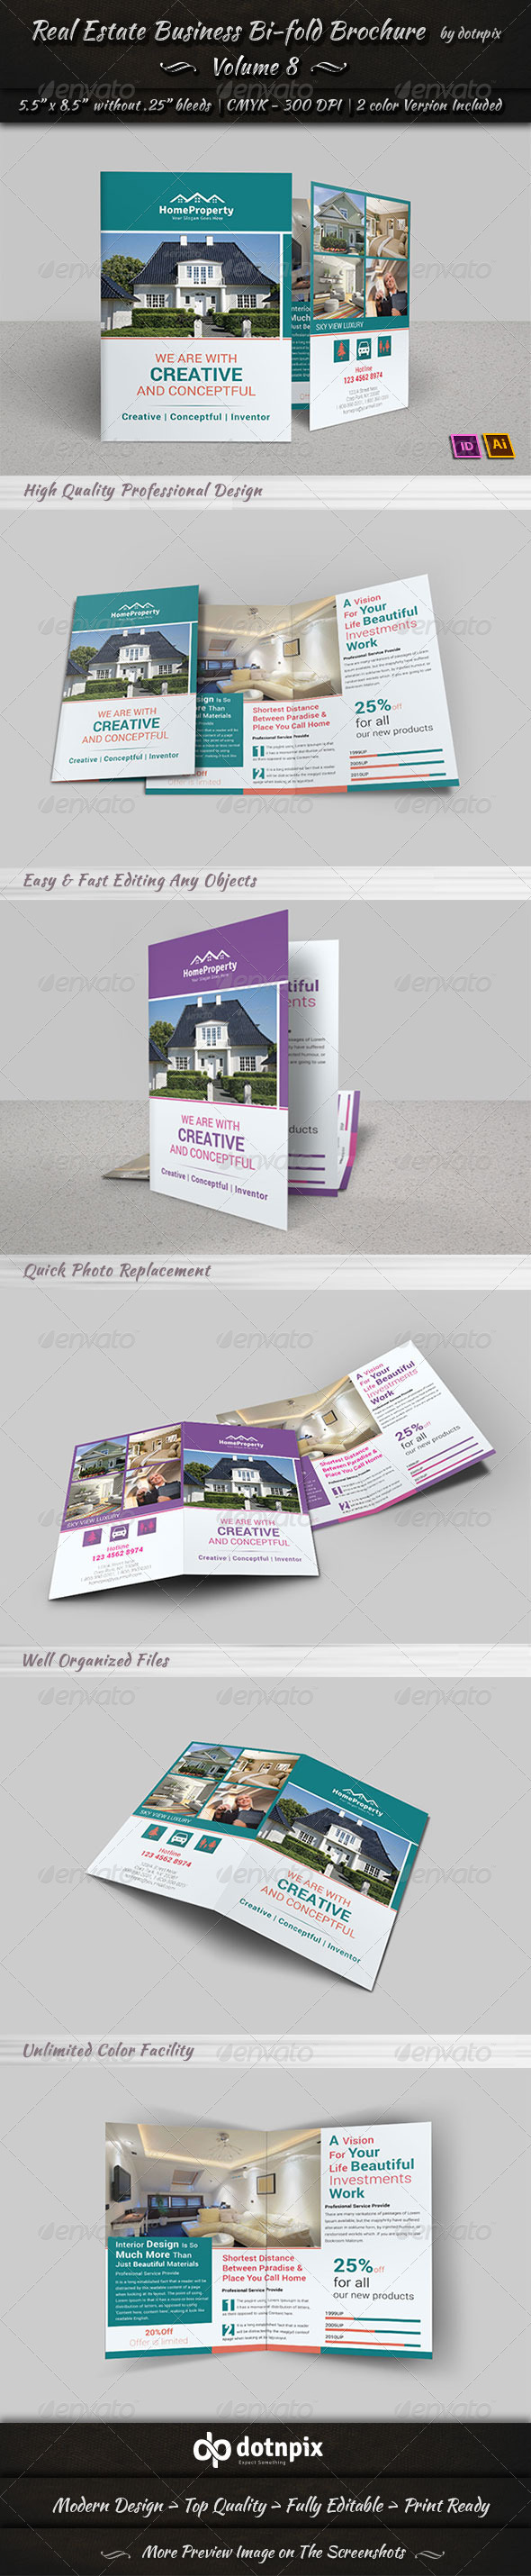 GraphicRiver Real Estate Business Bi-Fold Brochure Volume 8 6764541